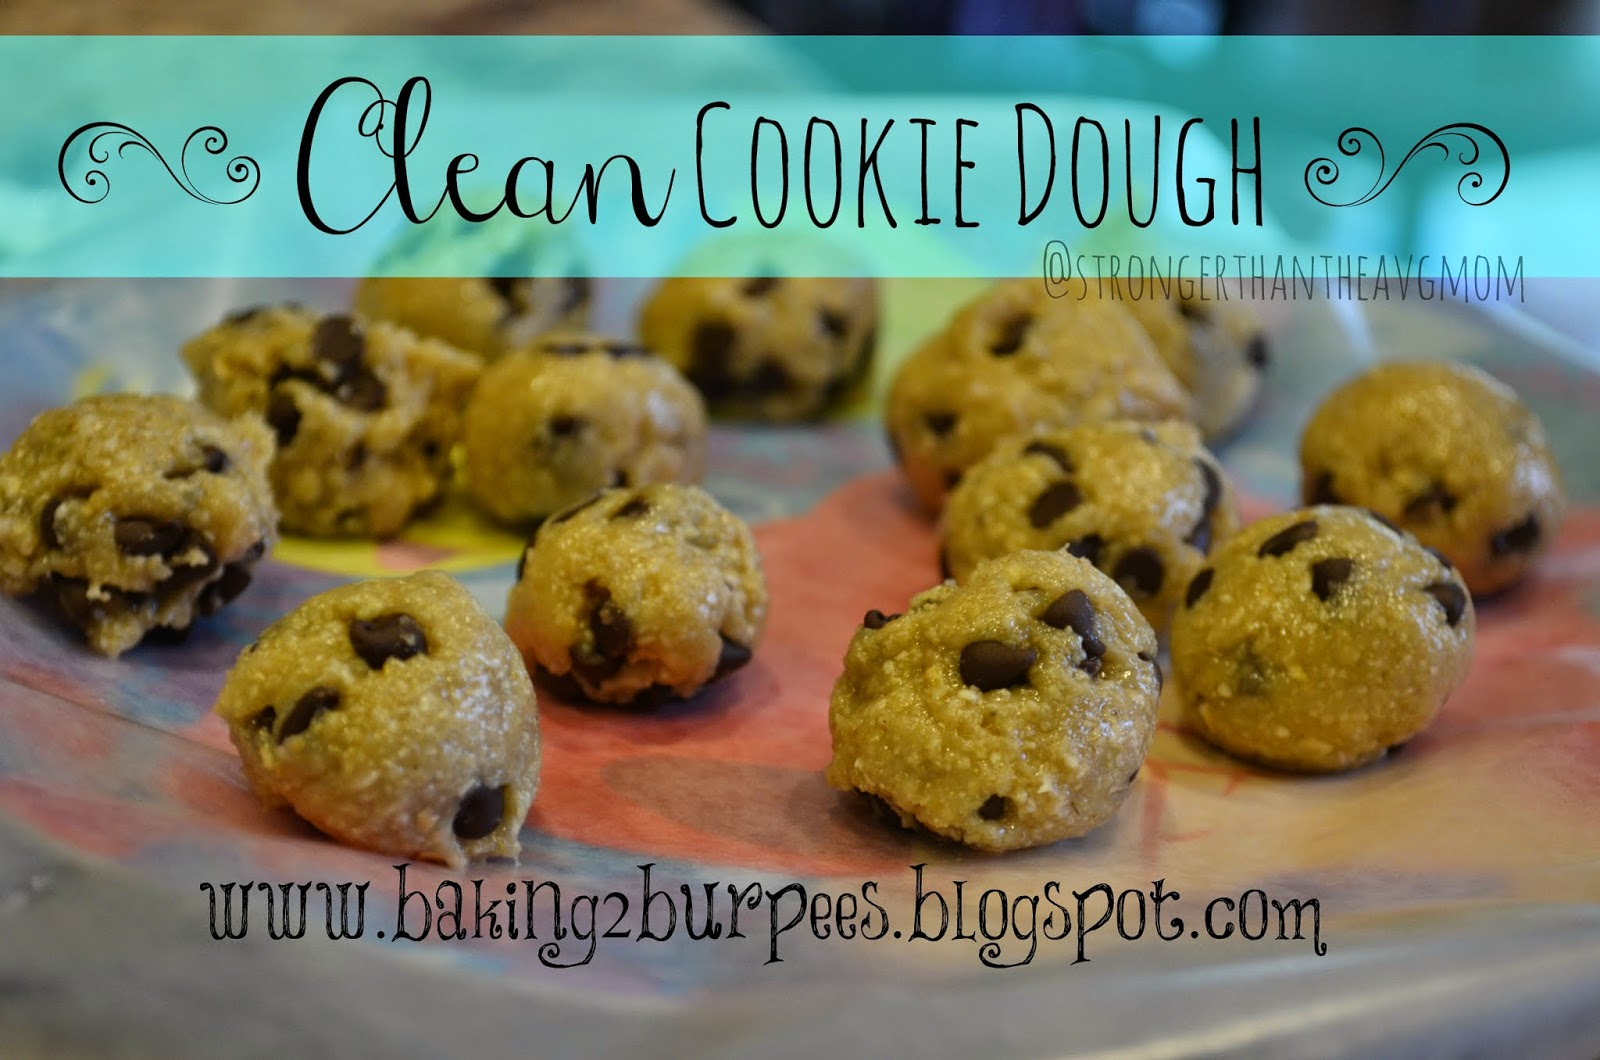 Clean eating recipe, kid approved recipe, healthy swap, cookie dough recipe, Pittsburgh, fit mom, nurse, cravings, Erin Traill, diamond beachbody coach